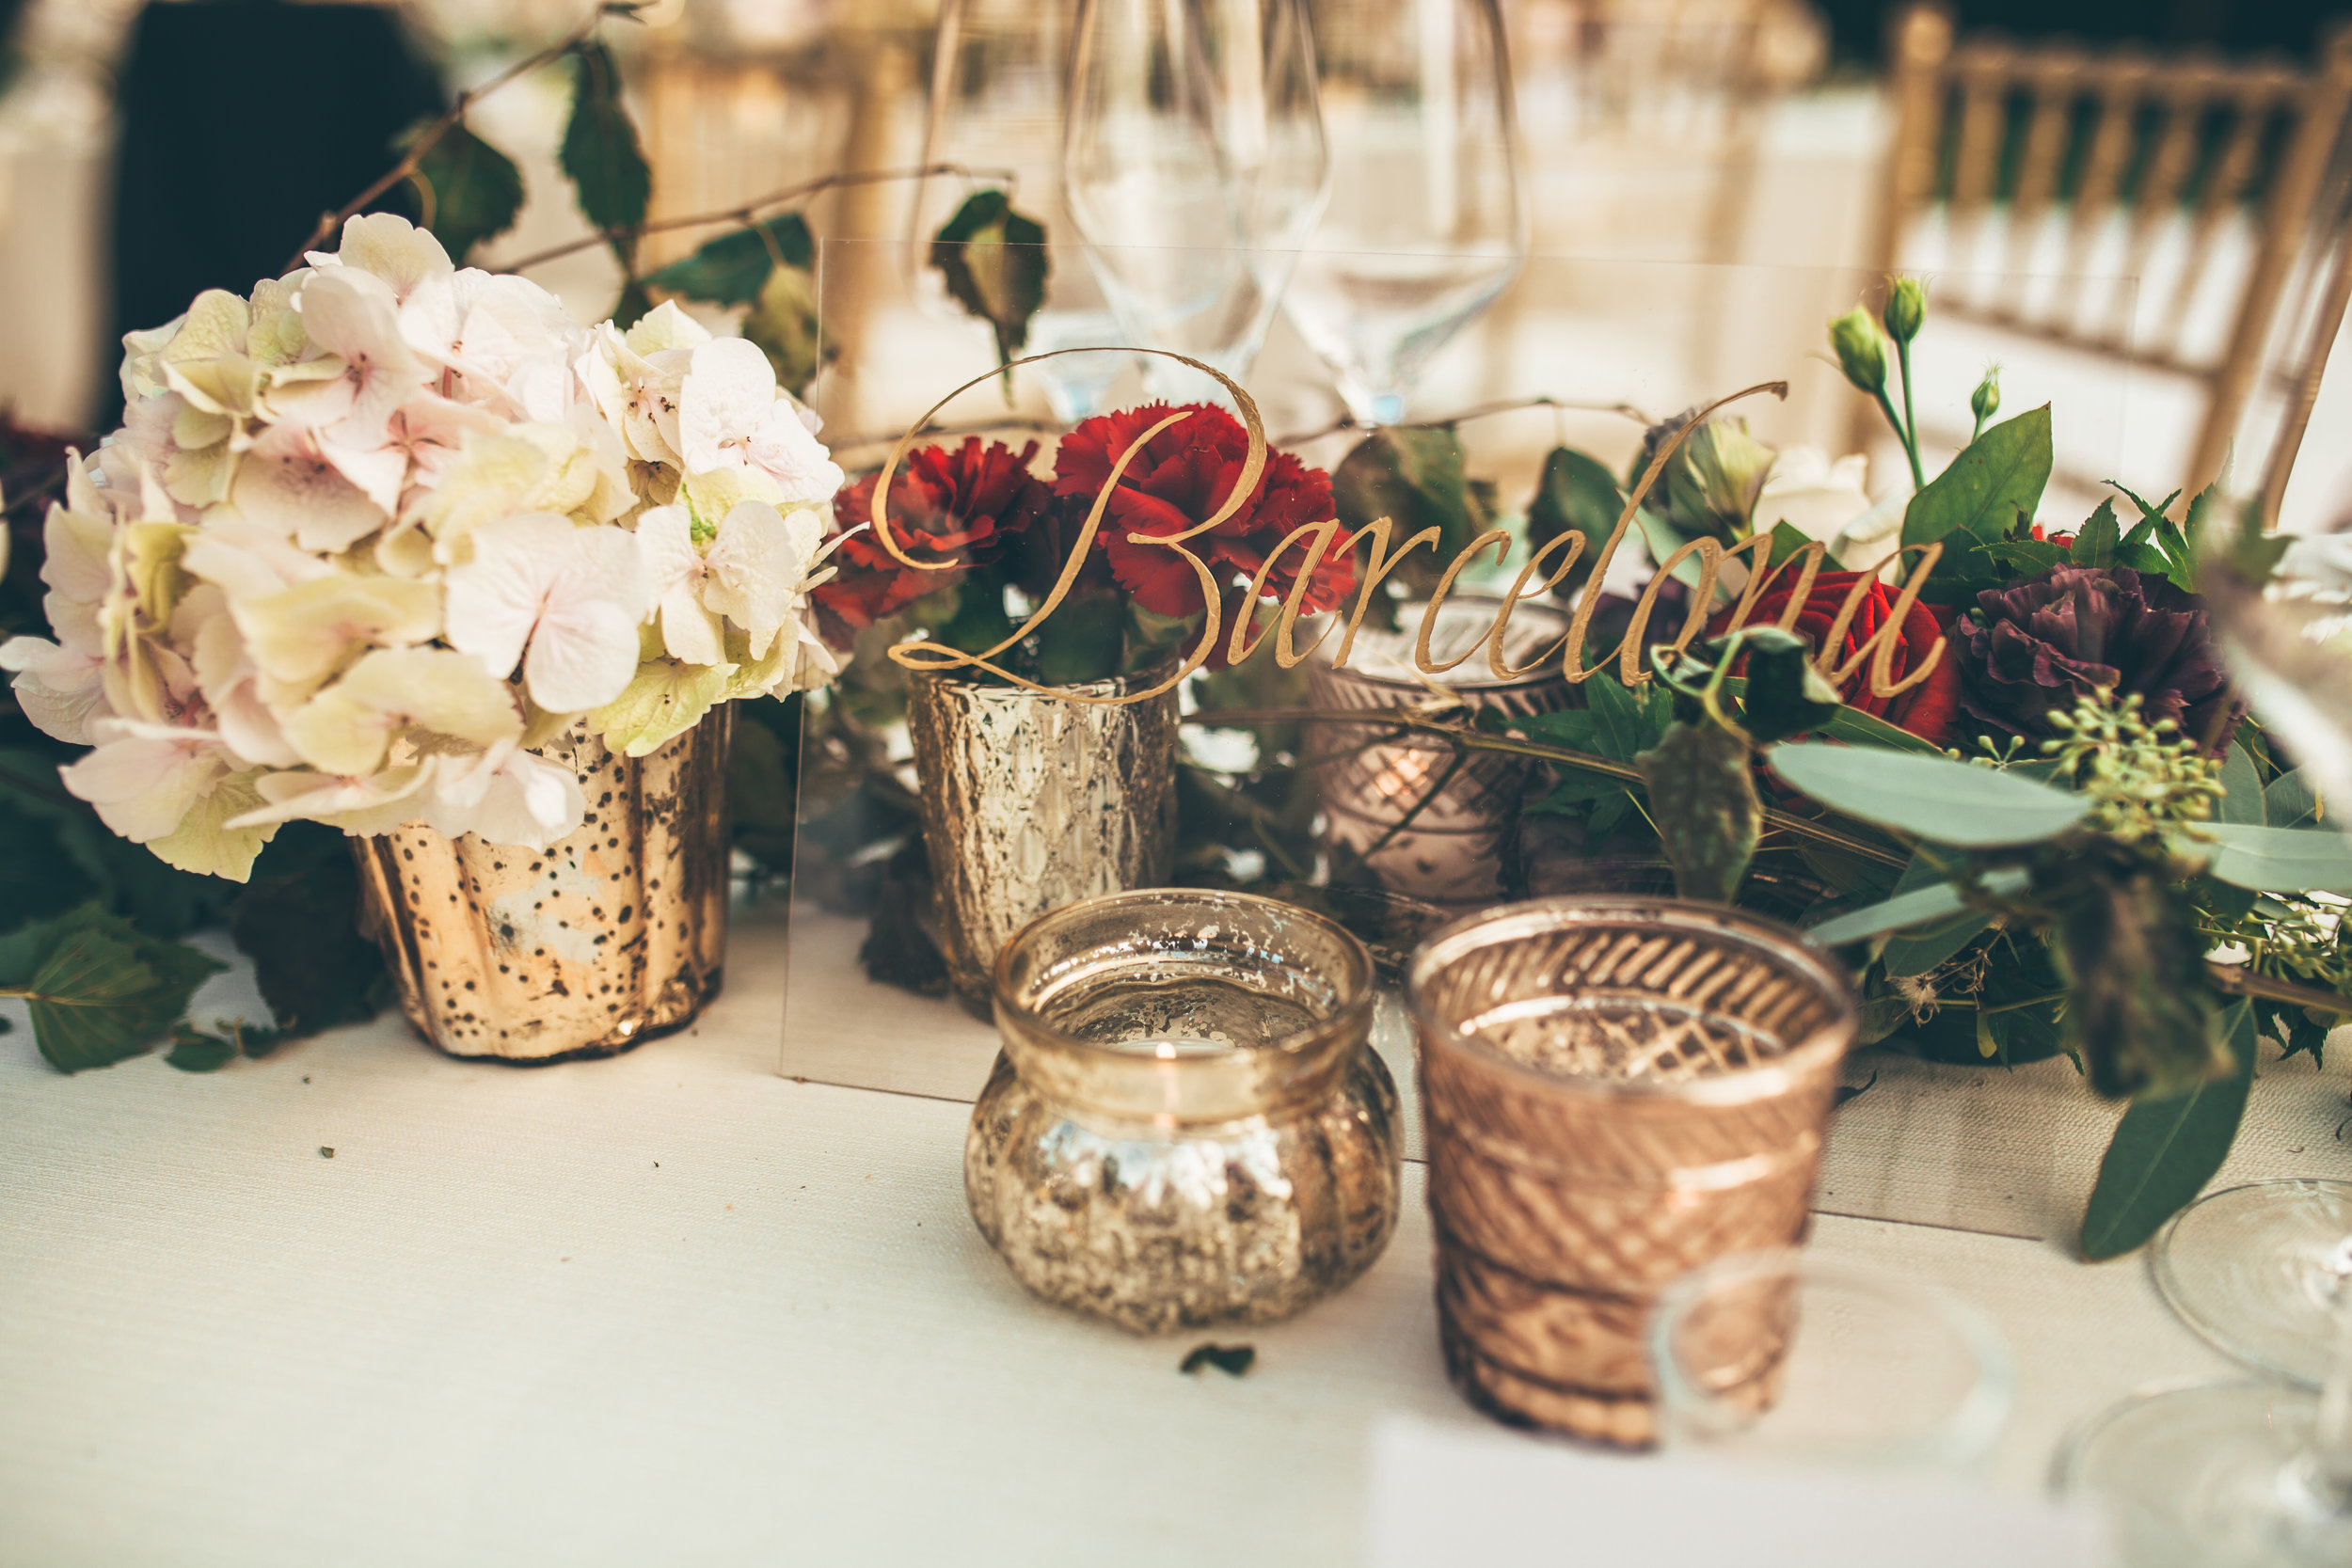 Wedding table names written in gold italic calligraphy   by www.chavelli.com